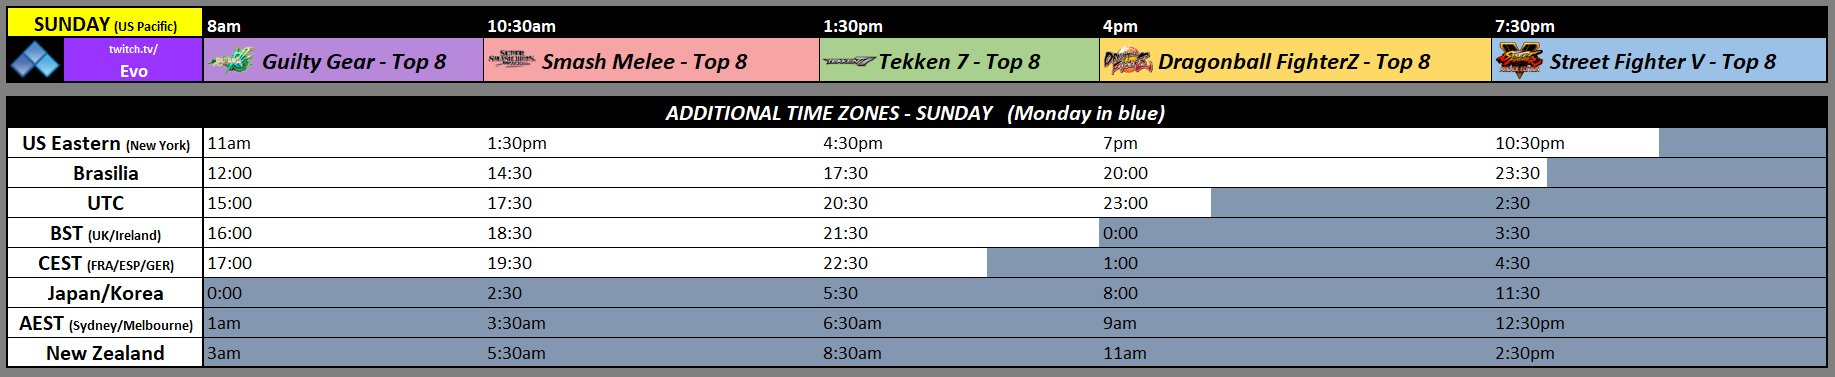 EVO 2018 Schedule 3 out of 3 image gallery